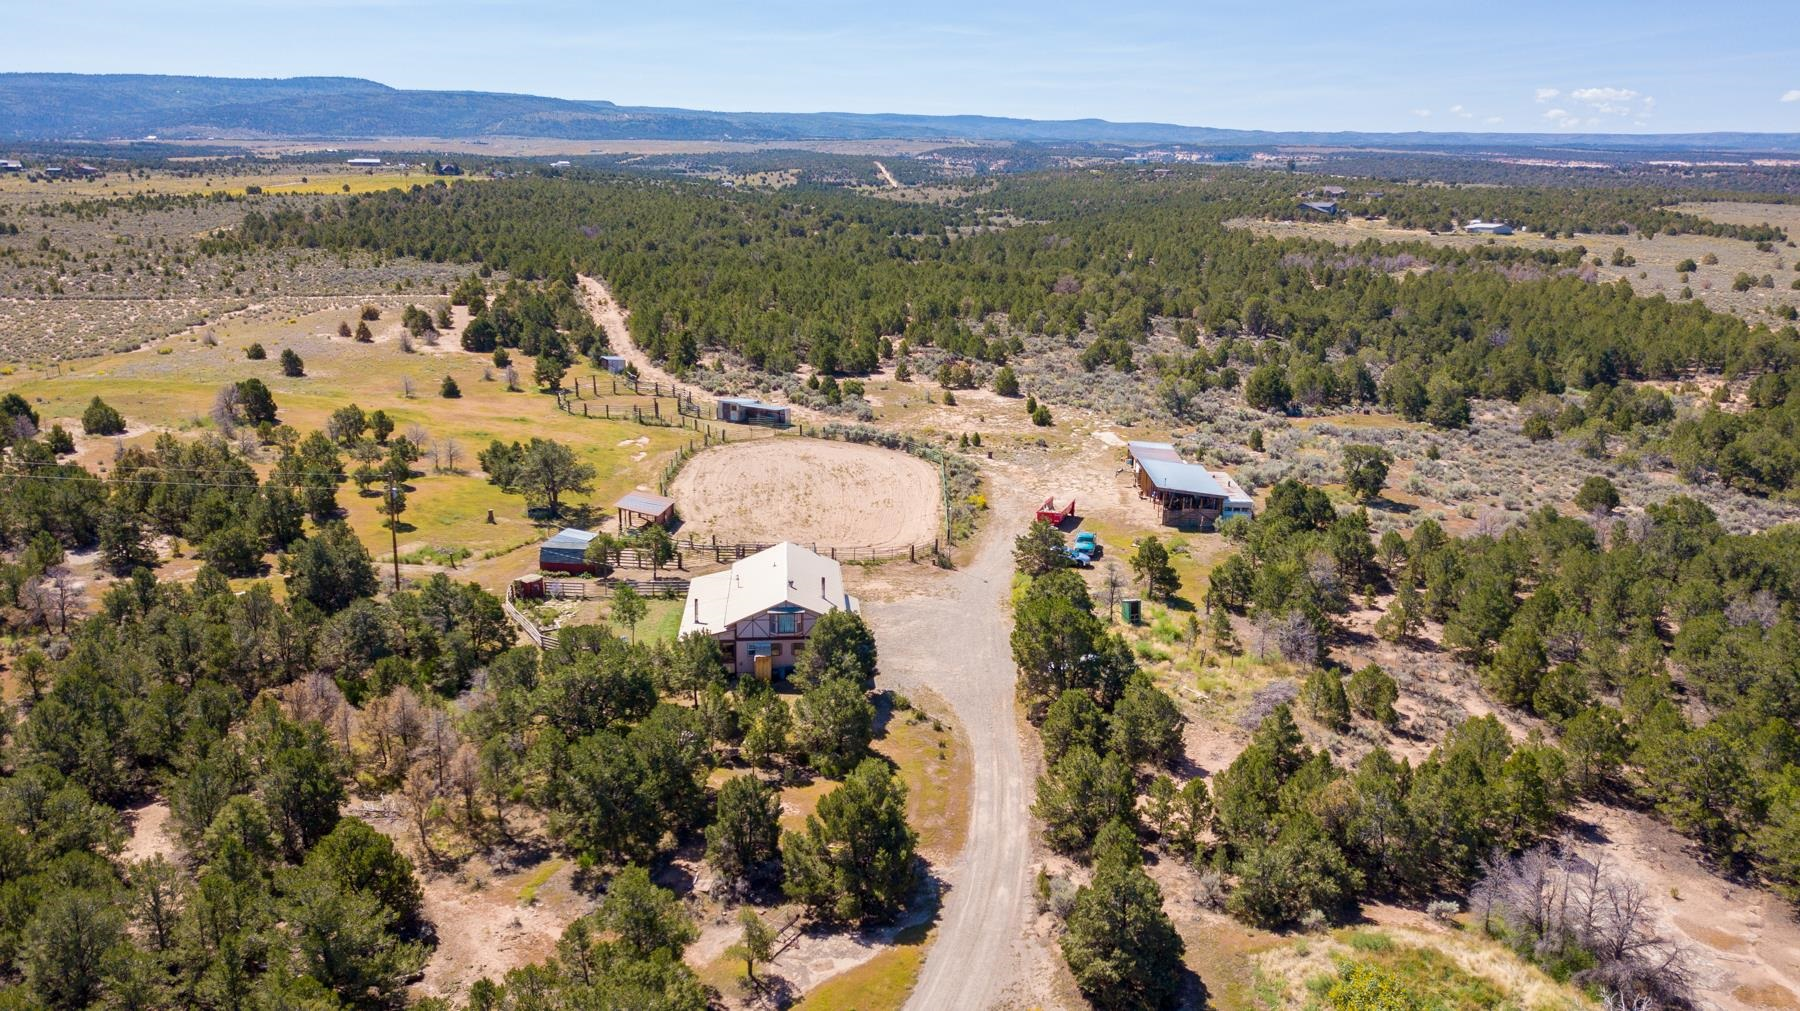 2+2 Quarter Horse Ranch.  Wonderful Glade Park horse property on over 37 acres.  This property features 1920 sf in the home, round pen, riding arena, shop, multiple outbuildings, beautiful views, and lots of trees. The acreage is ready for you and your horses!